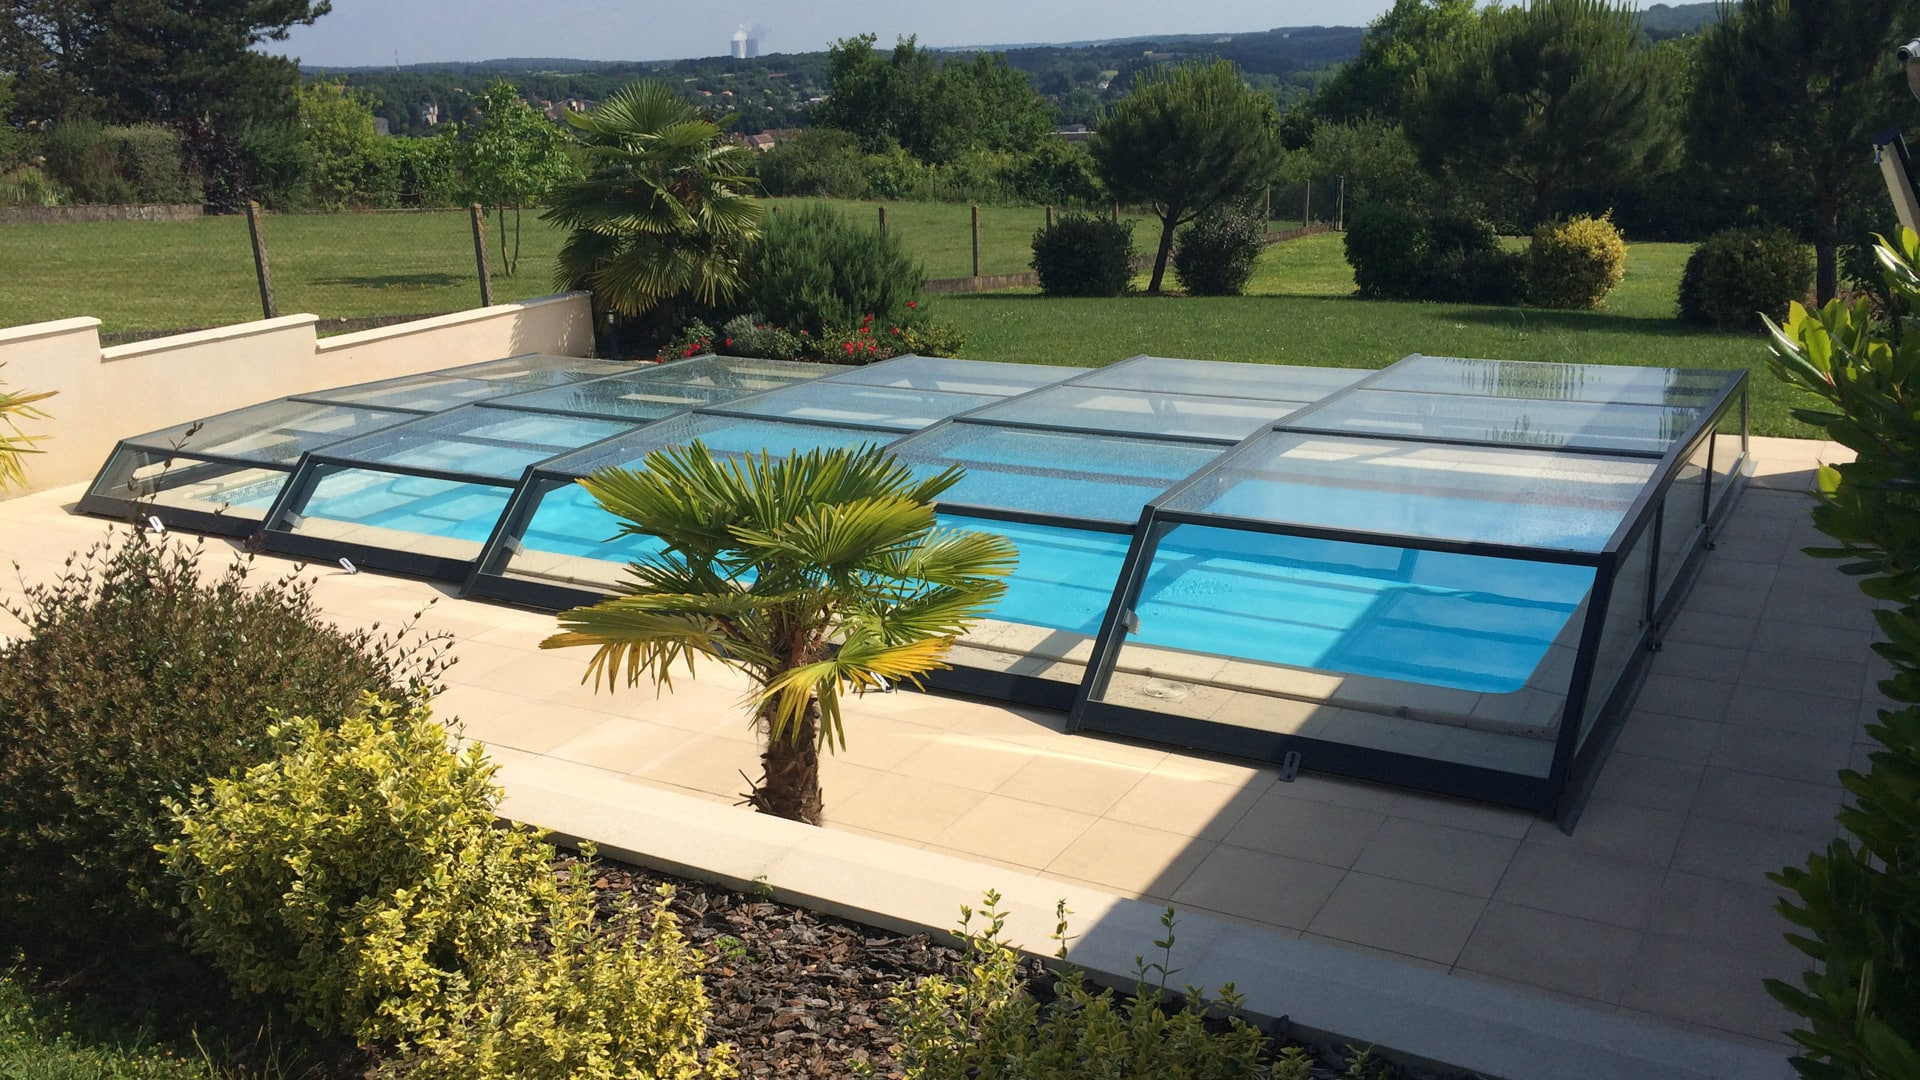 Abris de piscine bas t lescopique iris abri piscine for Abri de piscine bas